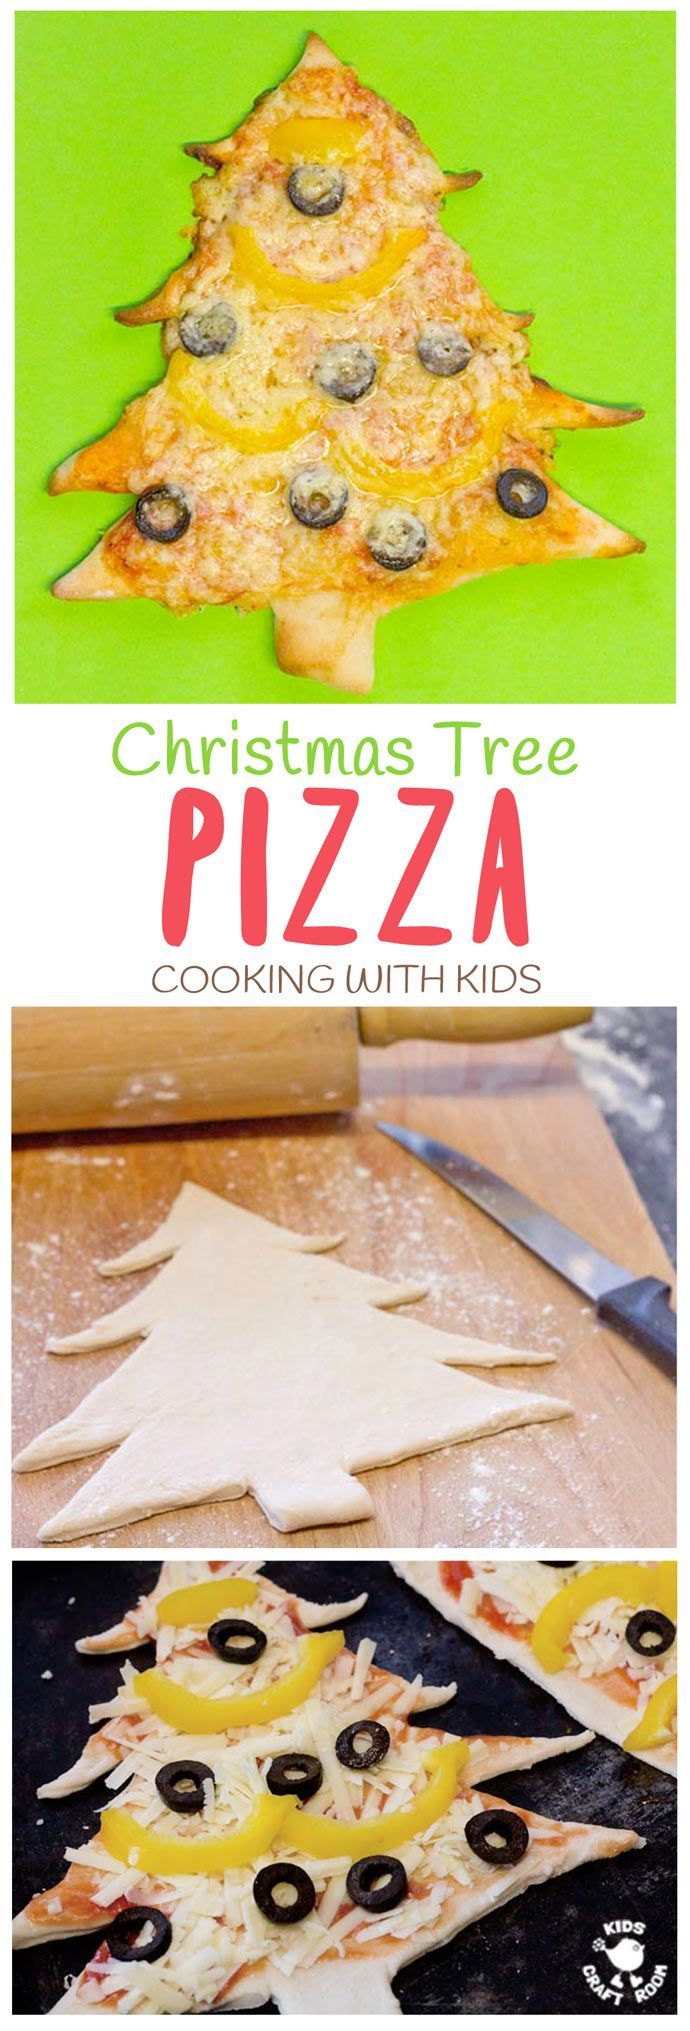 Christmas Tree Pizza  Cooking With Kids CHRISTMAS TREE PIZZA  the perfect Christmas recipe for cooking with kids via KidsCraftRoom